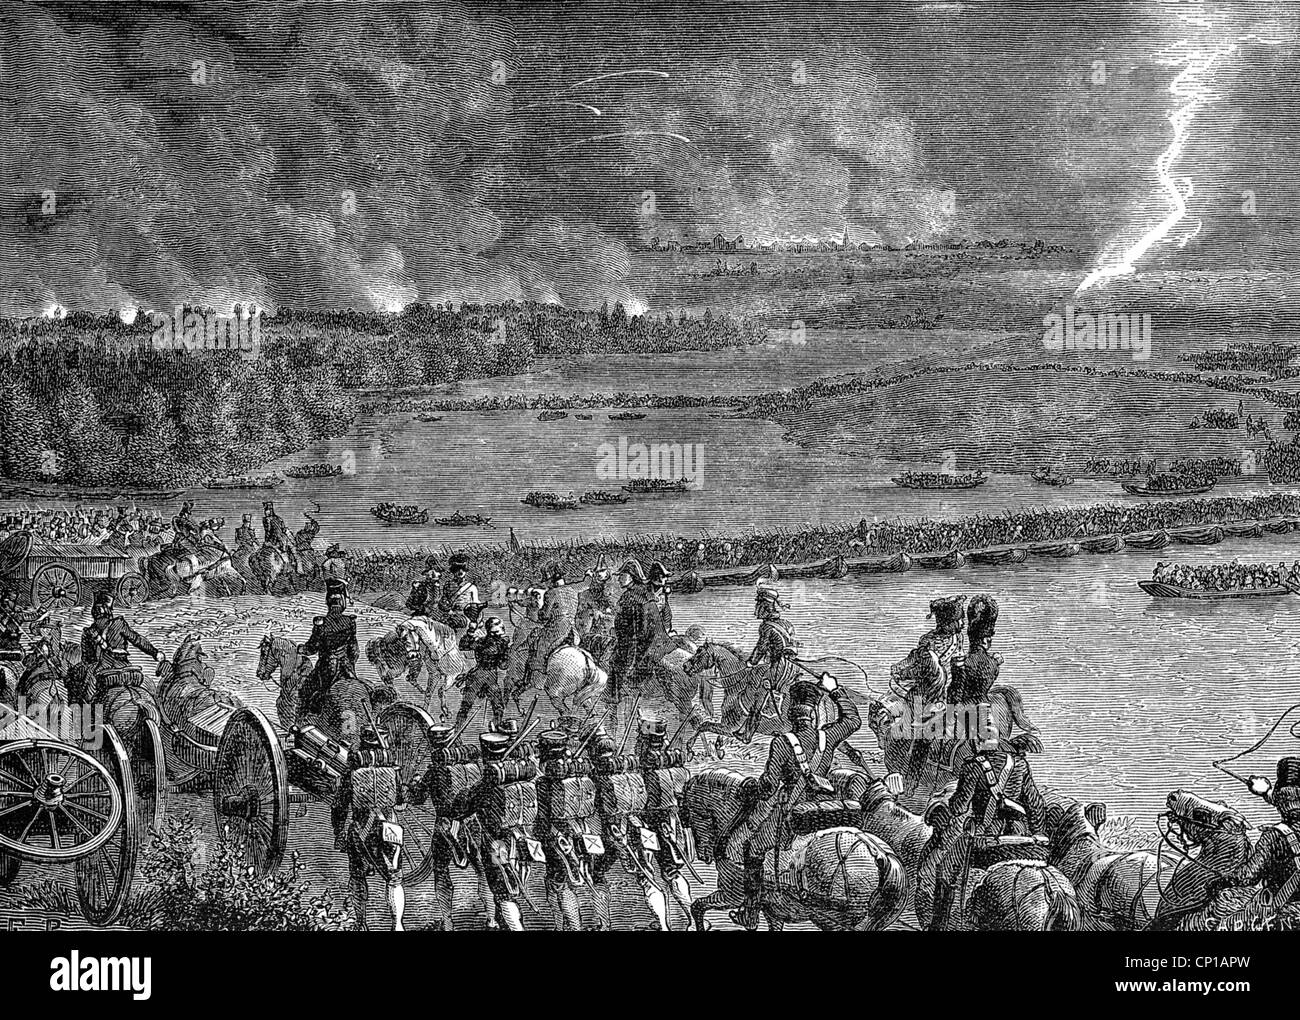 events, War of the Fifth Coalition, 1809, Battle of Wagram, 5./6.7.1809, French troops crossing the Danube river - Stock Image